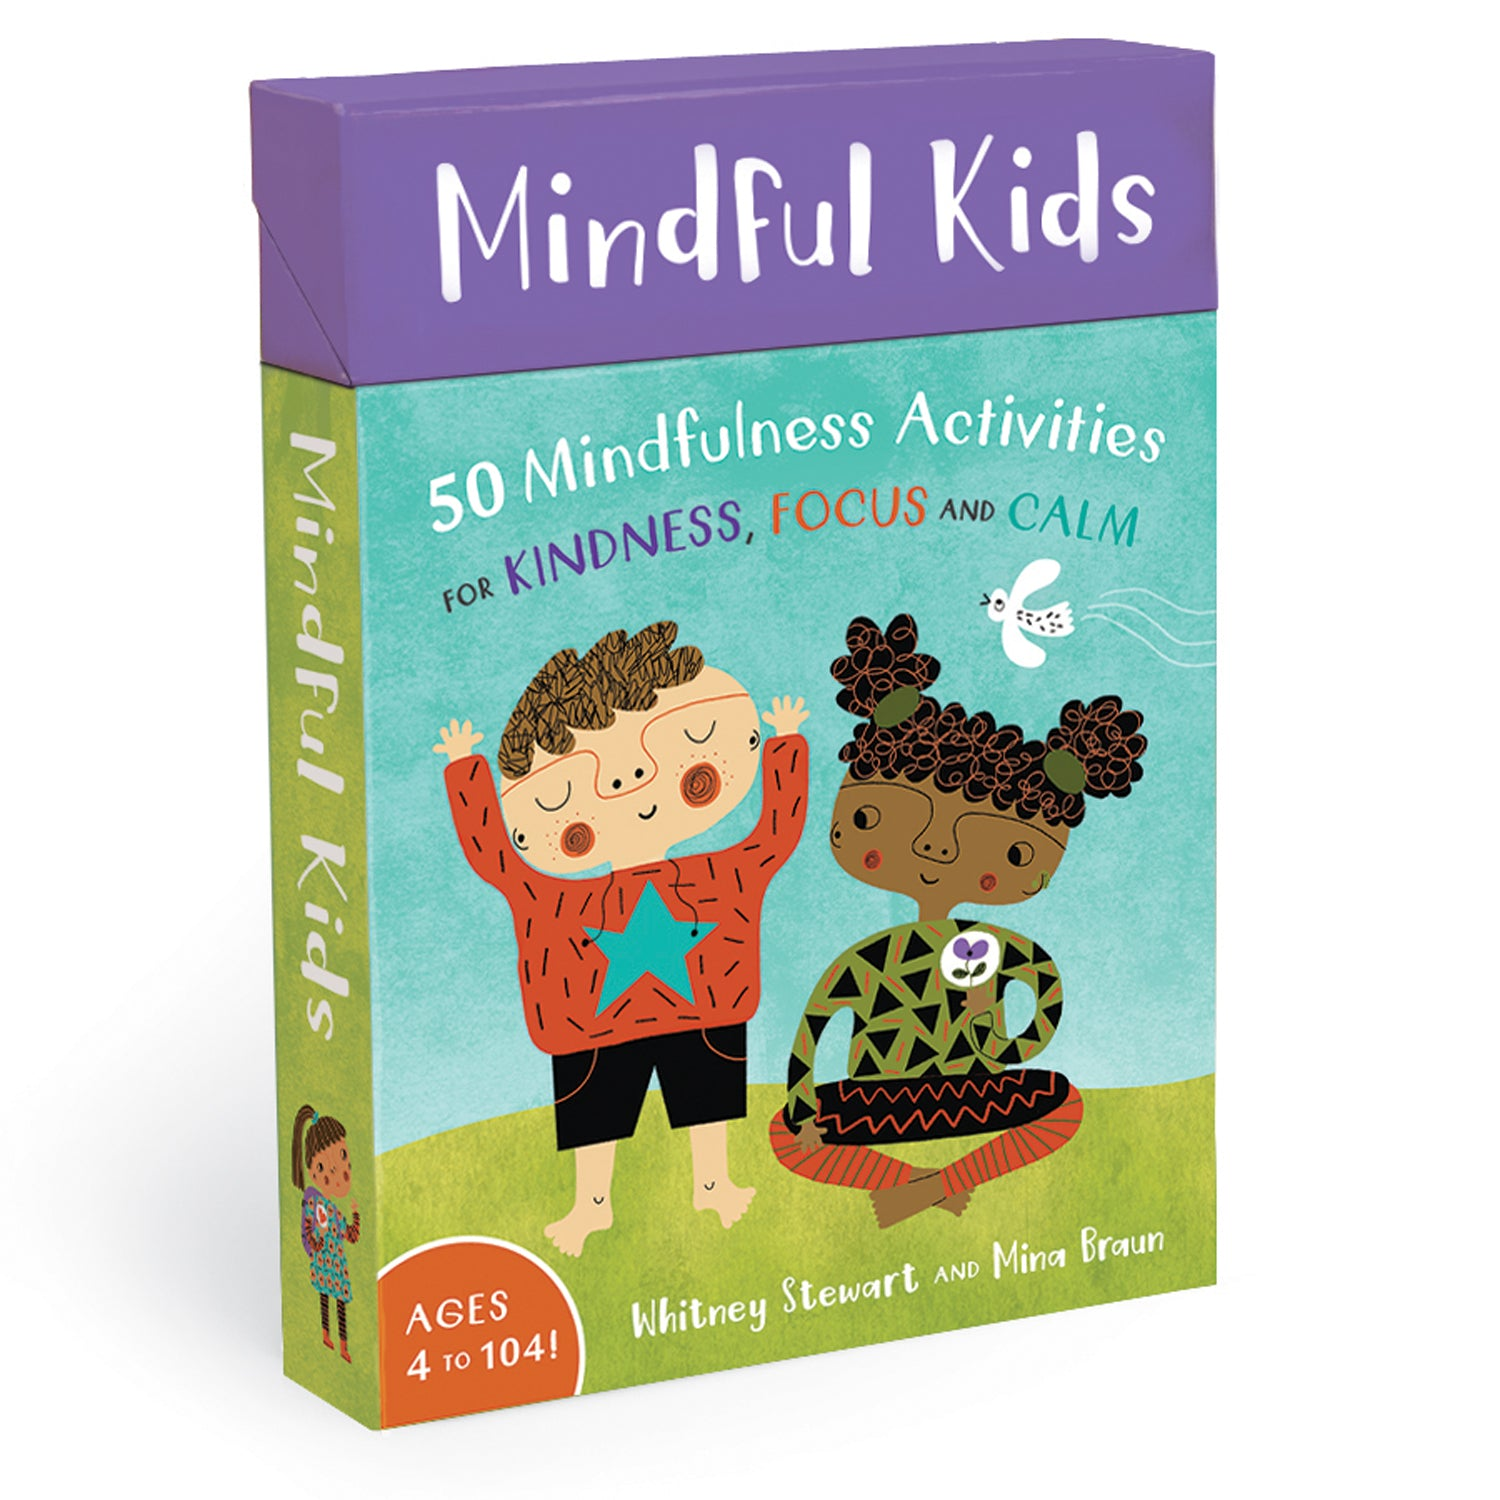 Mindful Kids Activity Cards - Kiddren